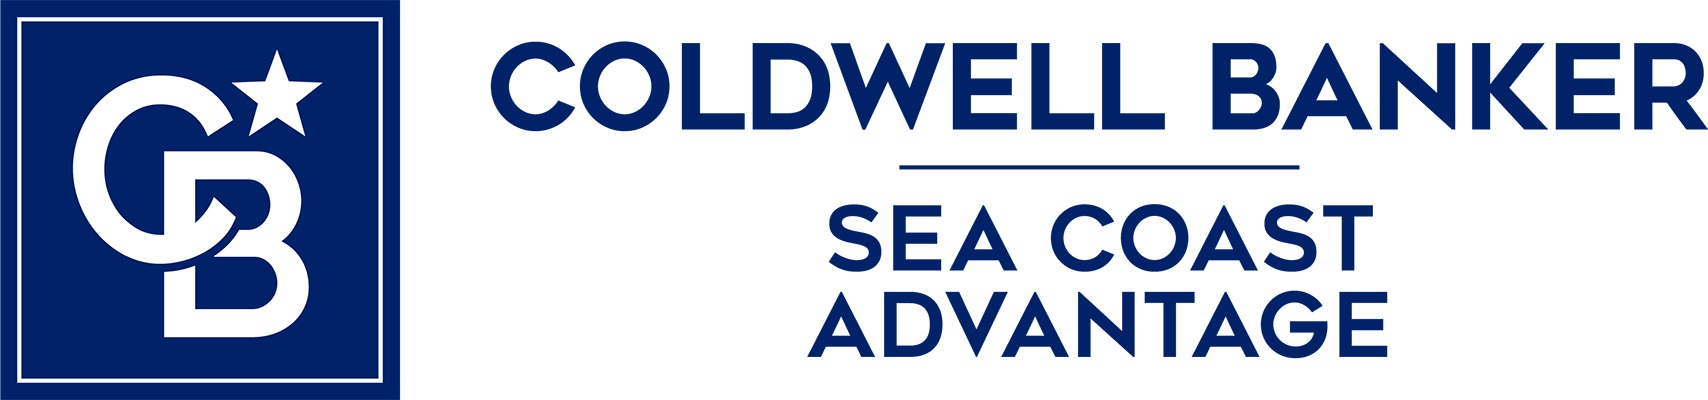 Randy Hitchcock - Coldwell Banker Sea Coast Advantage Realty Logo